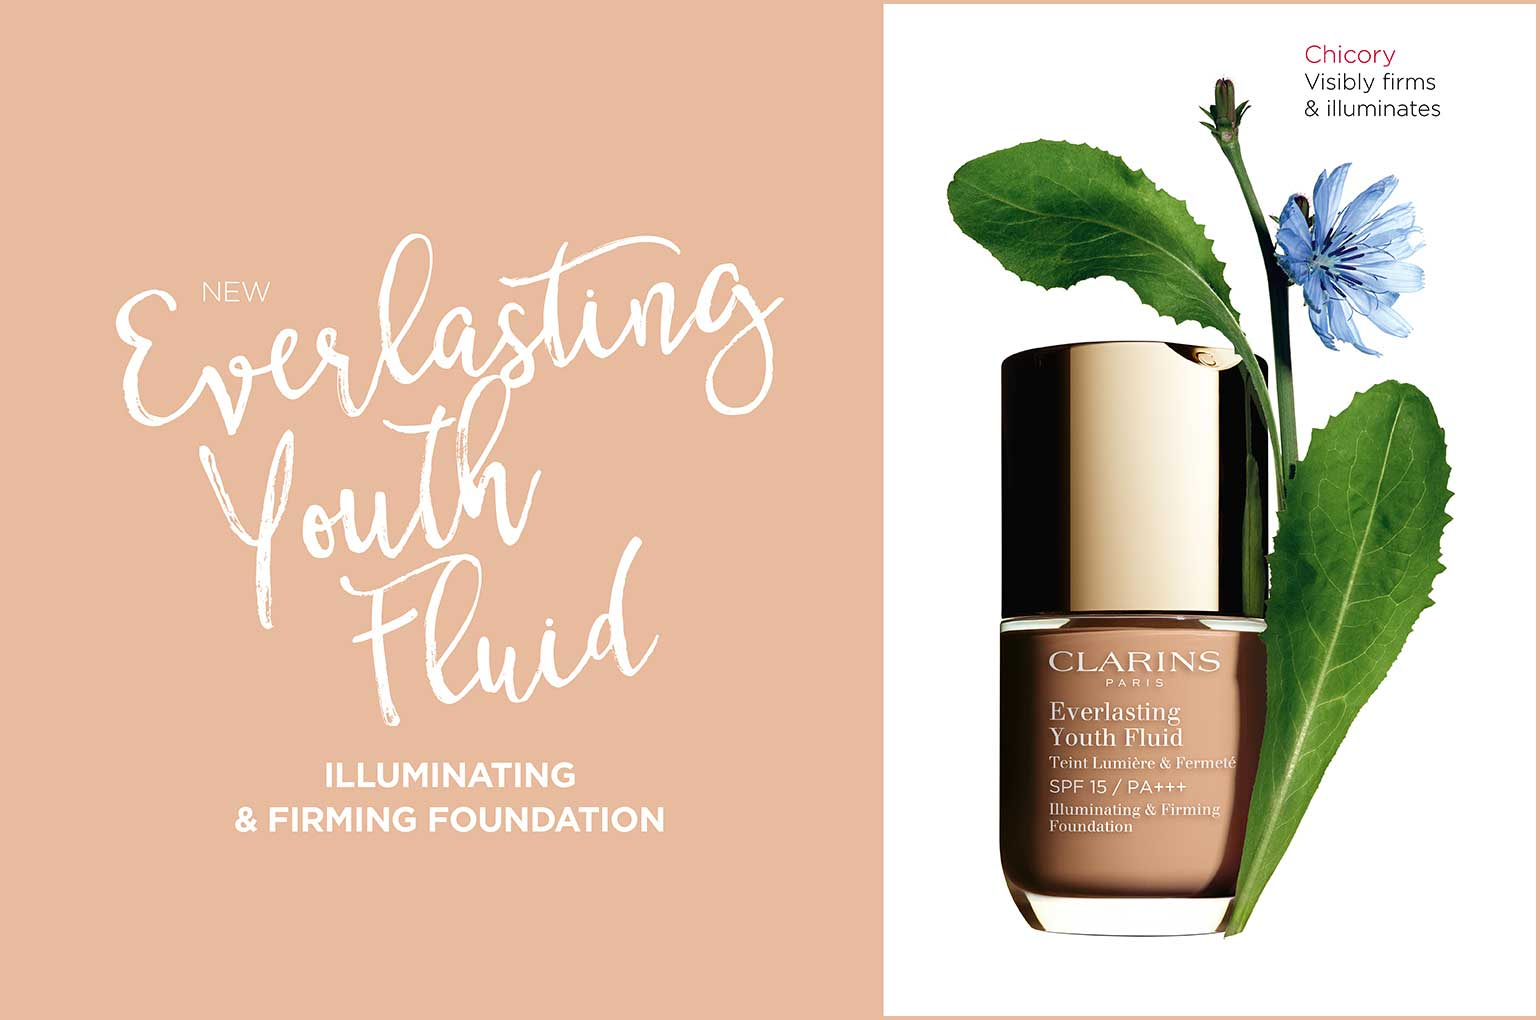 NEW Clarins Everlasting Youth Fluid